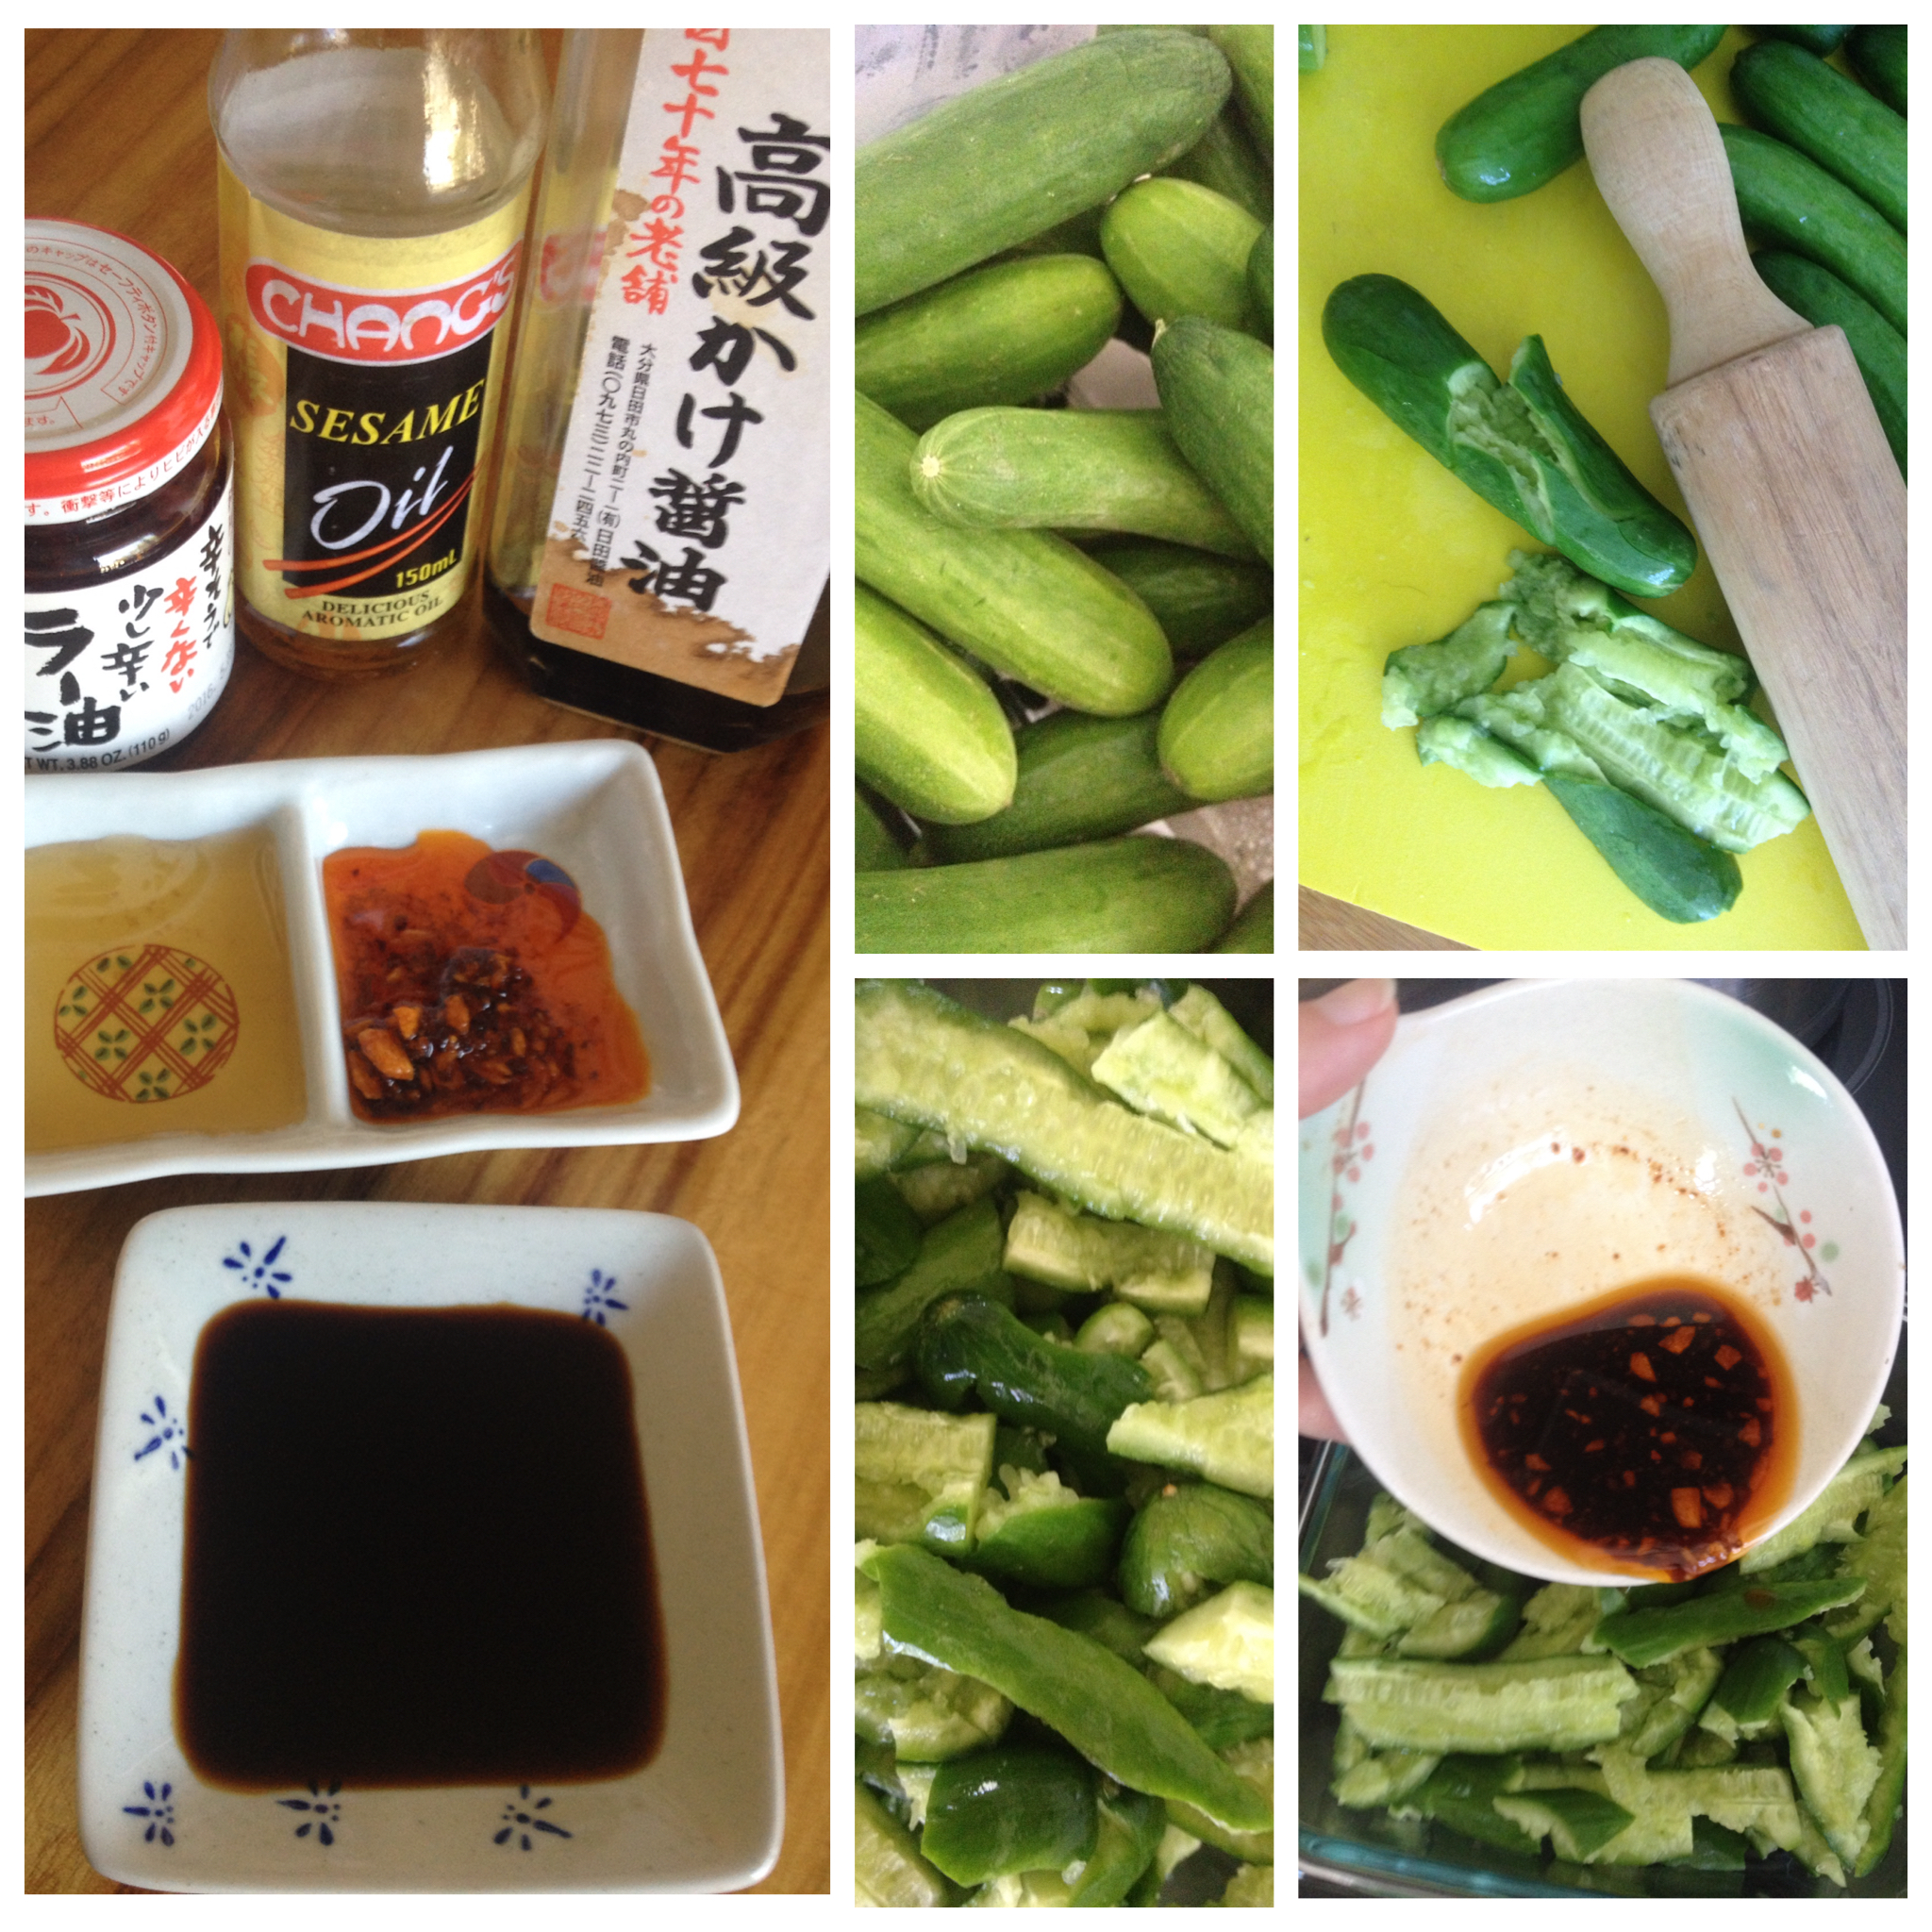 The chilli oil we have is mildly warming and has garlic in it. By smashing the cucumbers, there is more surface area for the dressing to soak in than if the cucumbers were cut.